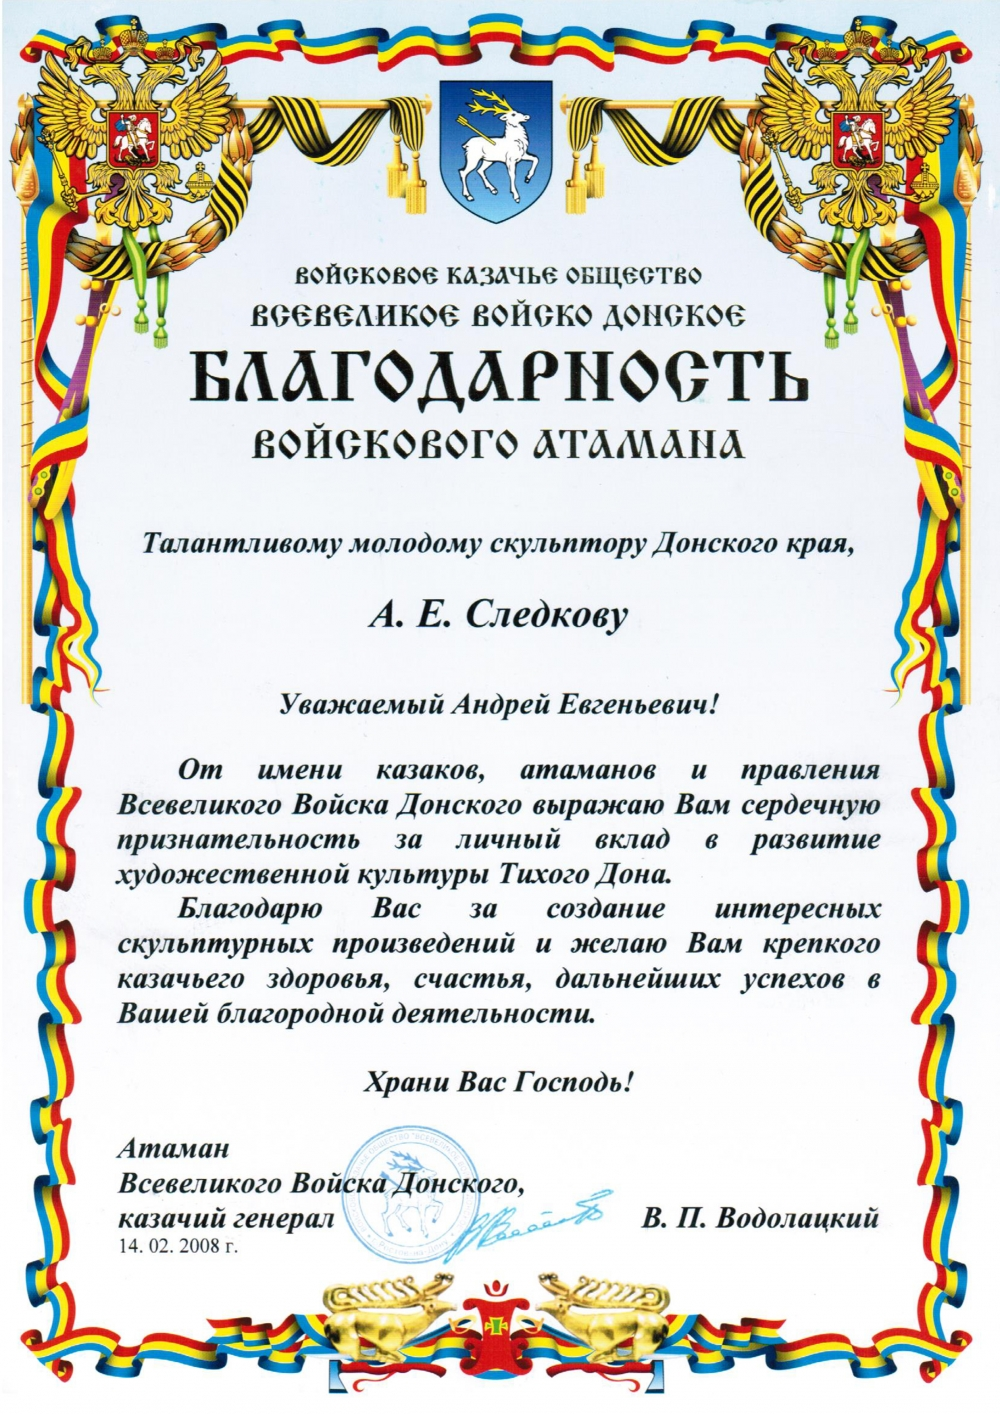 The letter of gratitude from the Cossacks, atamans